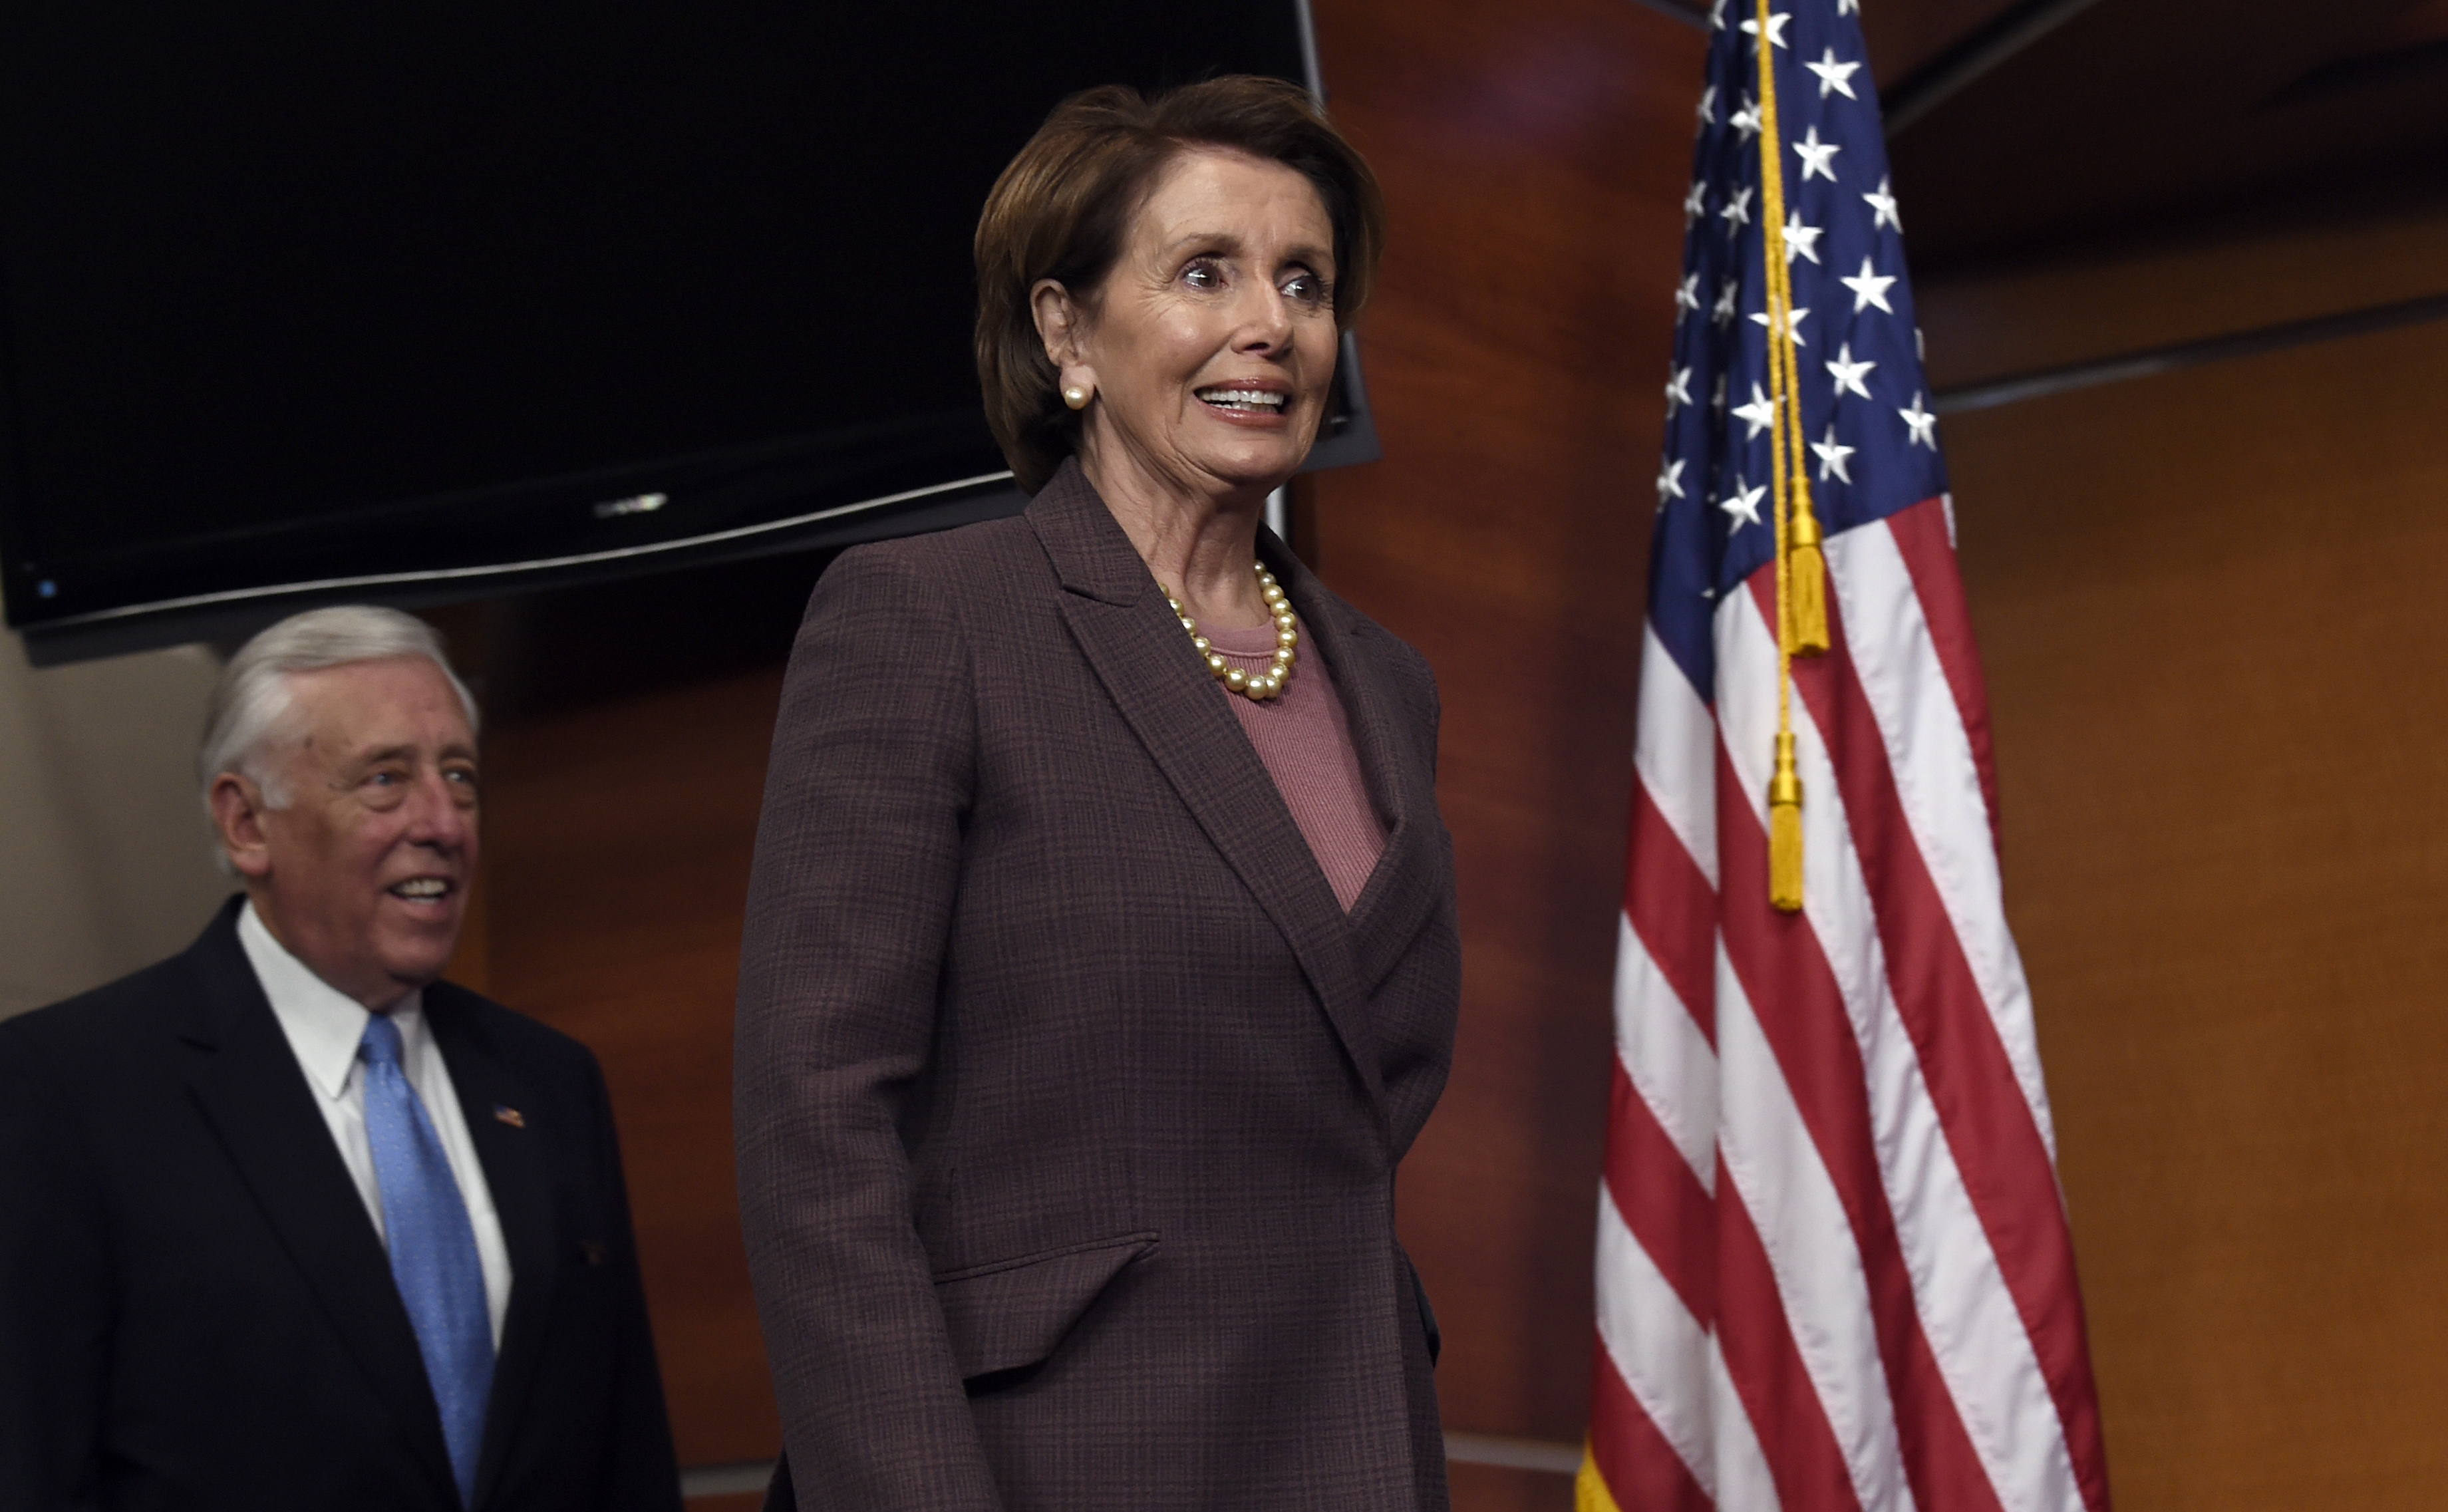 House Minority Leader Nancy Pelosi of Calif., followed by House Minority Whip Steny Hoyer of Md., arrives for a news conference on Capitol Hill in Washington, Tuesday, Nov. 18, 2014, to introduce the Democratic leadership team for the 114th Congress. )